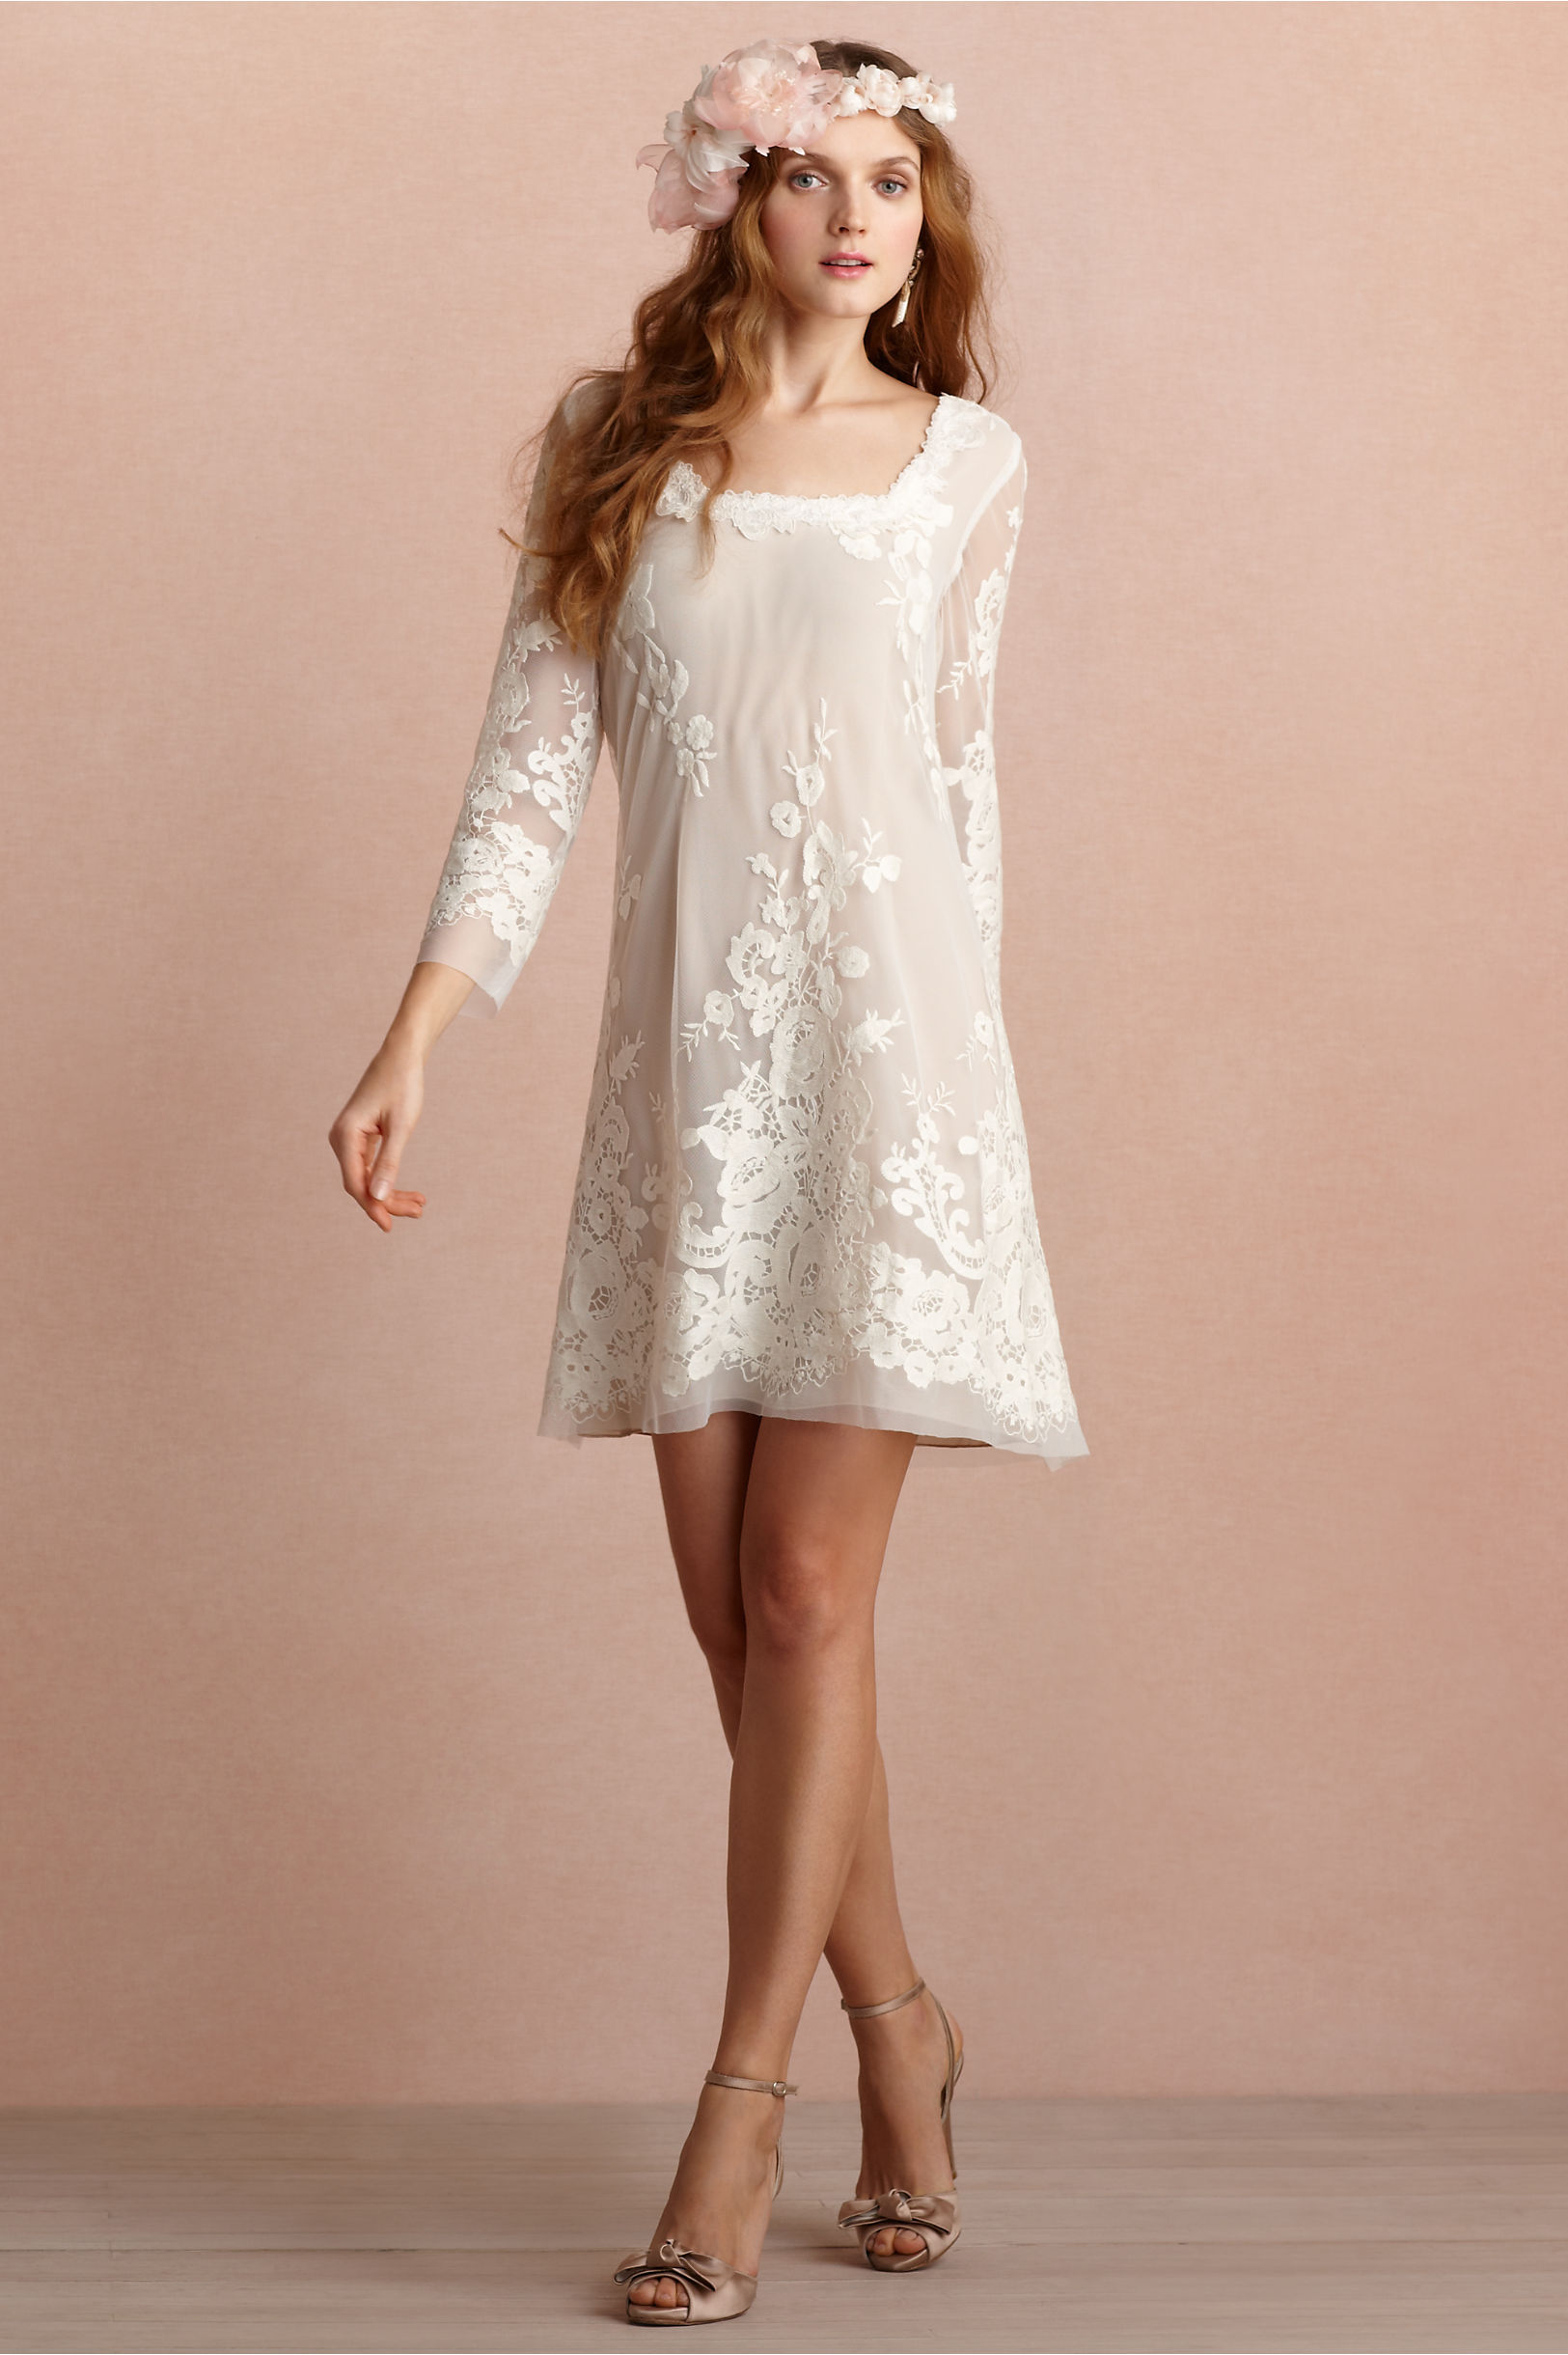 Daisy Doll Dress in Bride | BHLDN